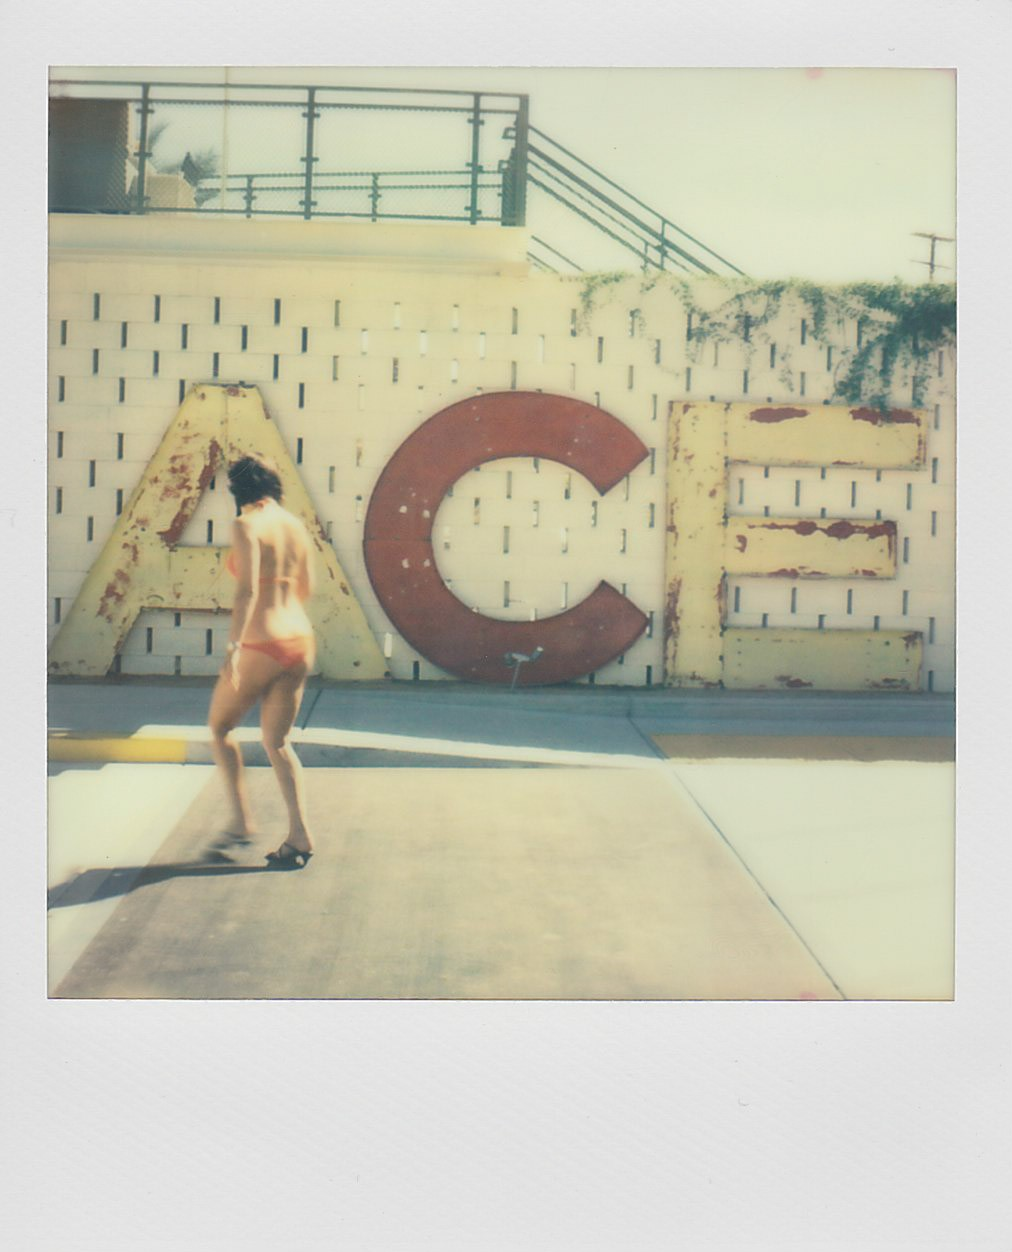 ACE_HOTEL_SIGN_PALM_SPRINGS_WOMAN_SWIMSUIT_POLAROID